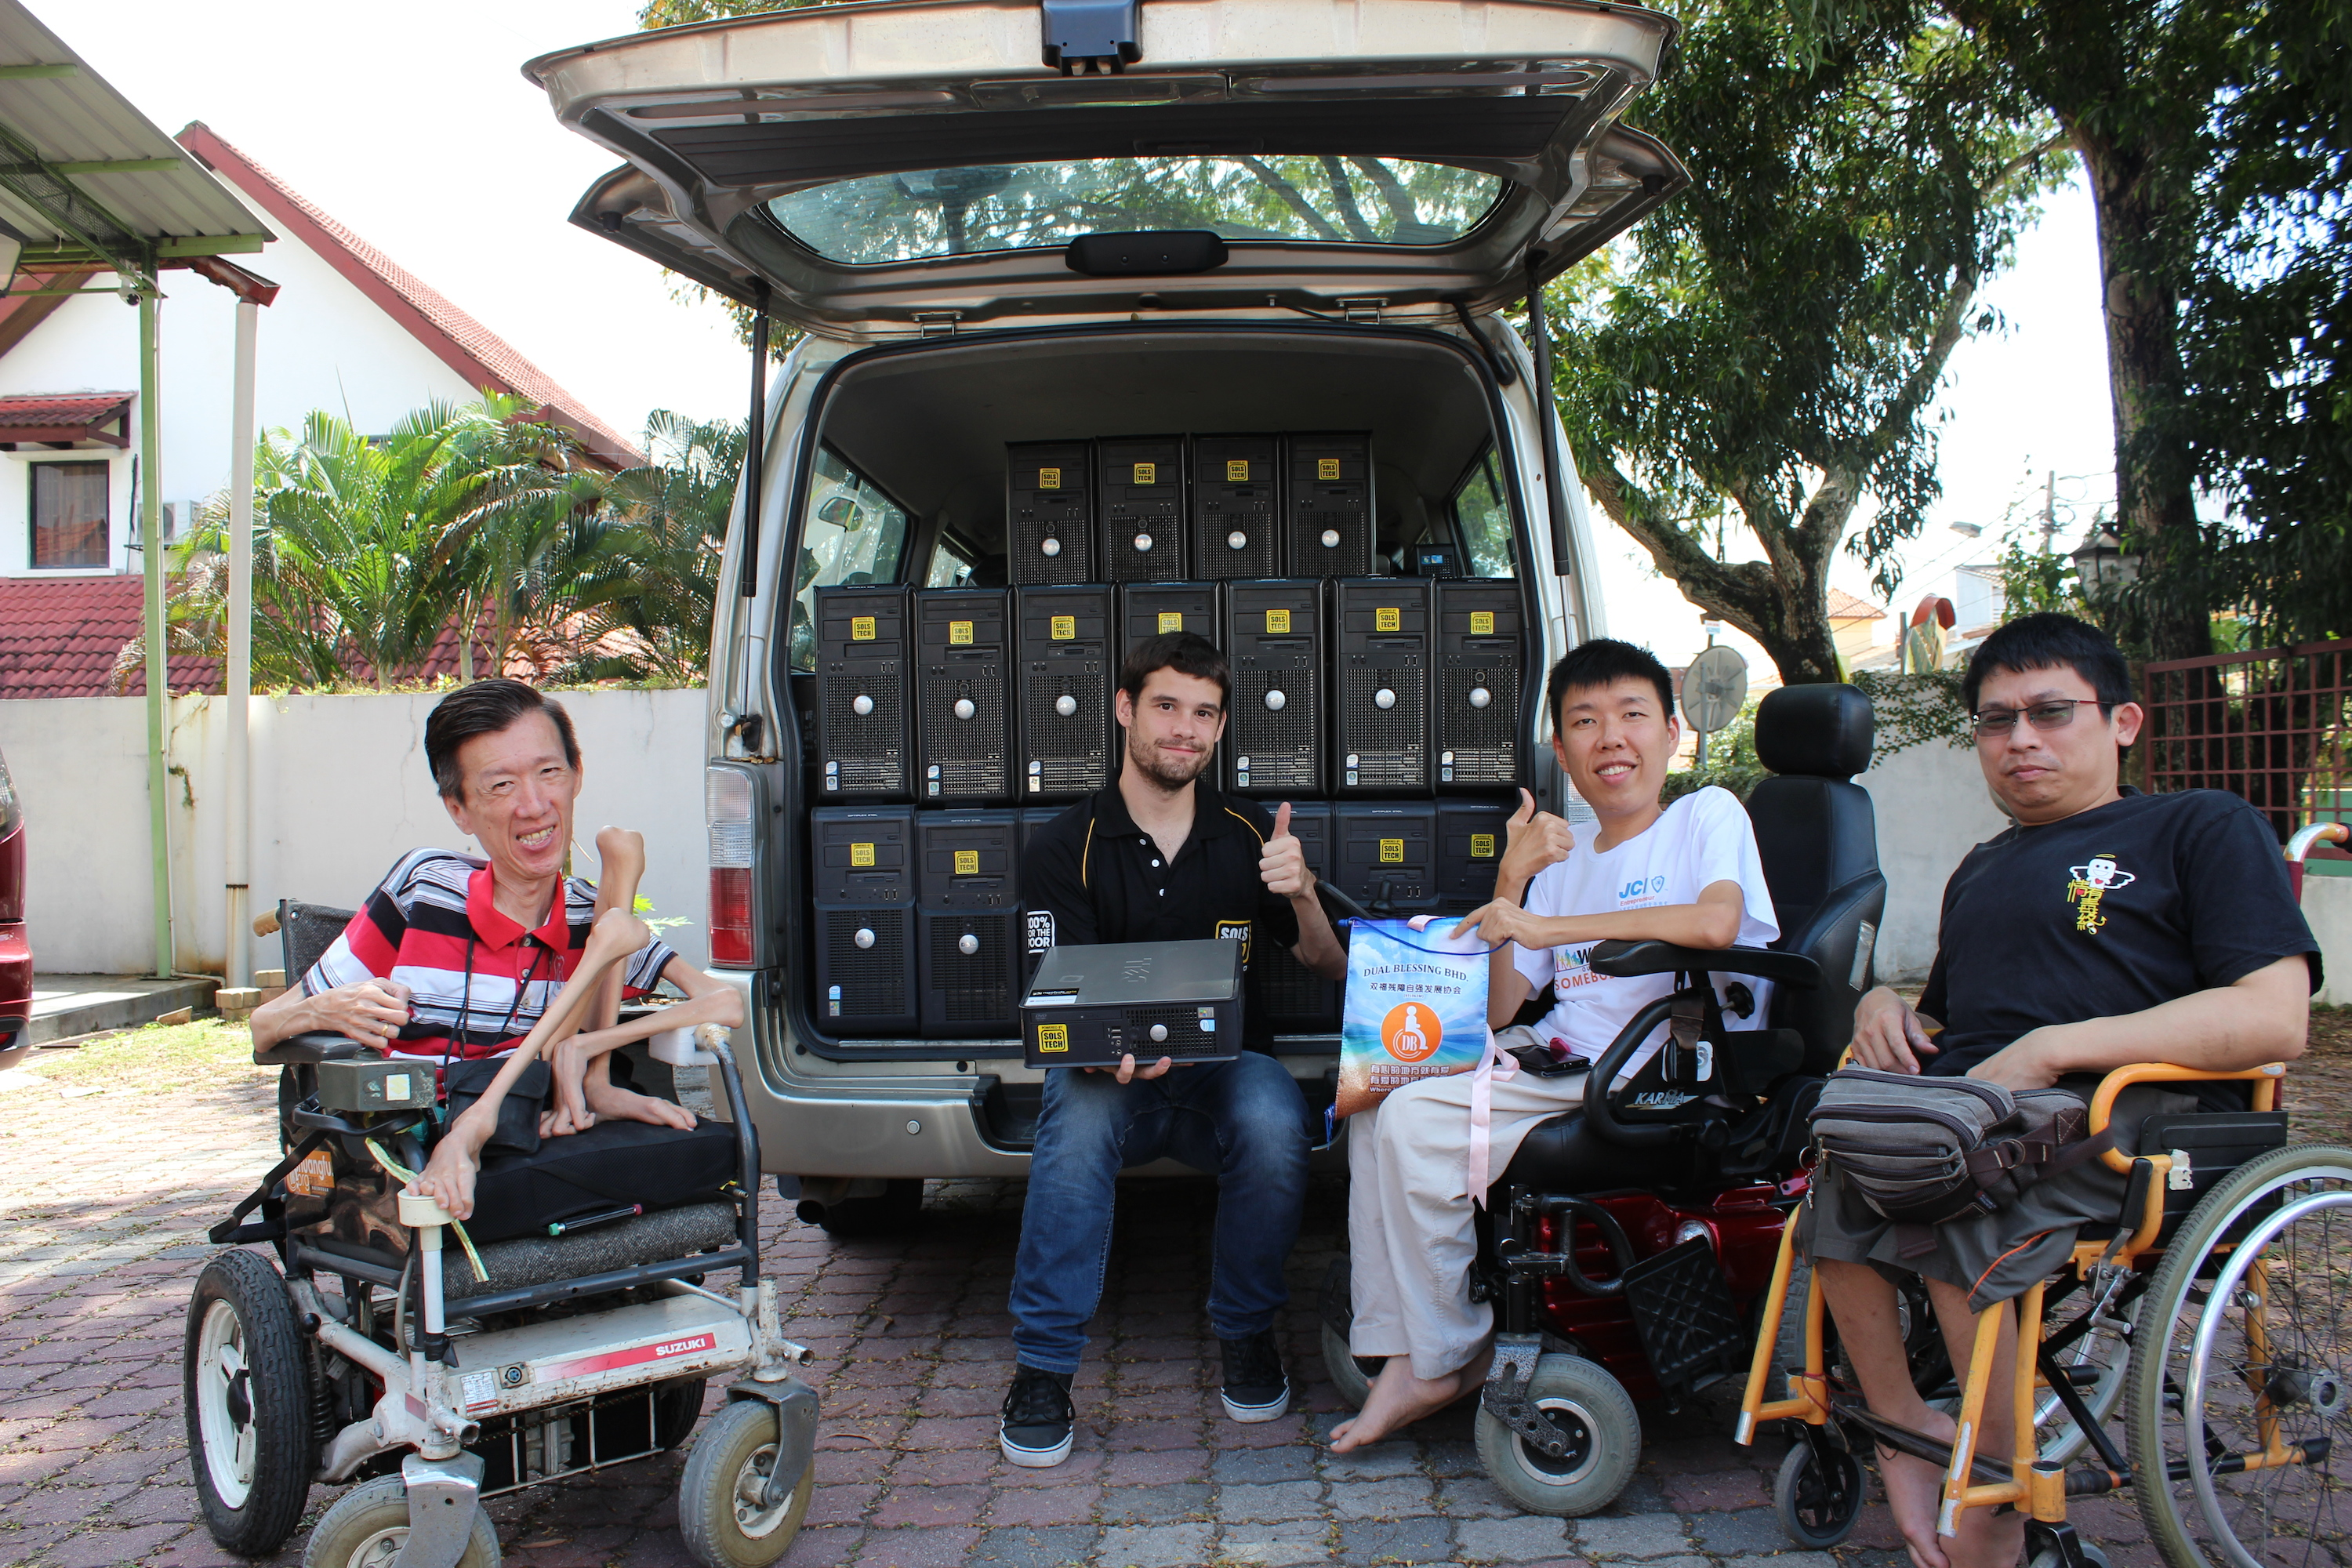 SOLS Tech donates hundreds of computers each year to underserved communities like non-profit organisation Dual Blessing Bhd which provides help, care and support for disabled people.